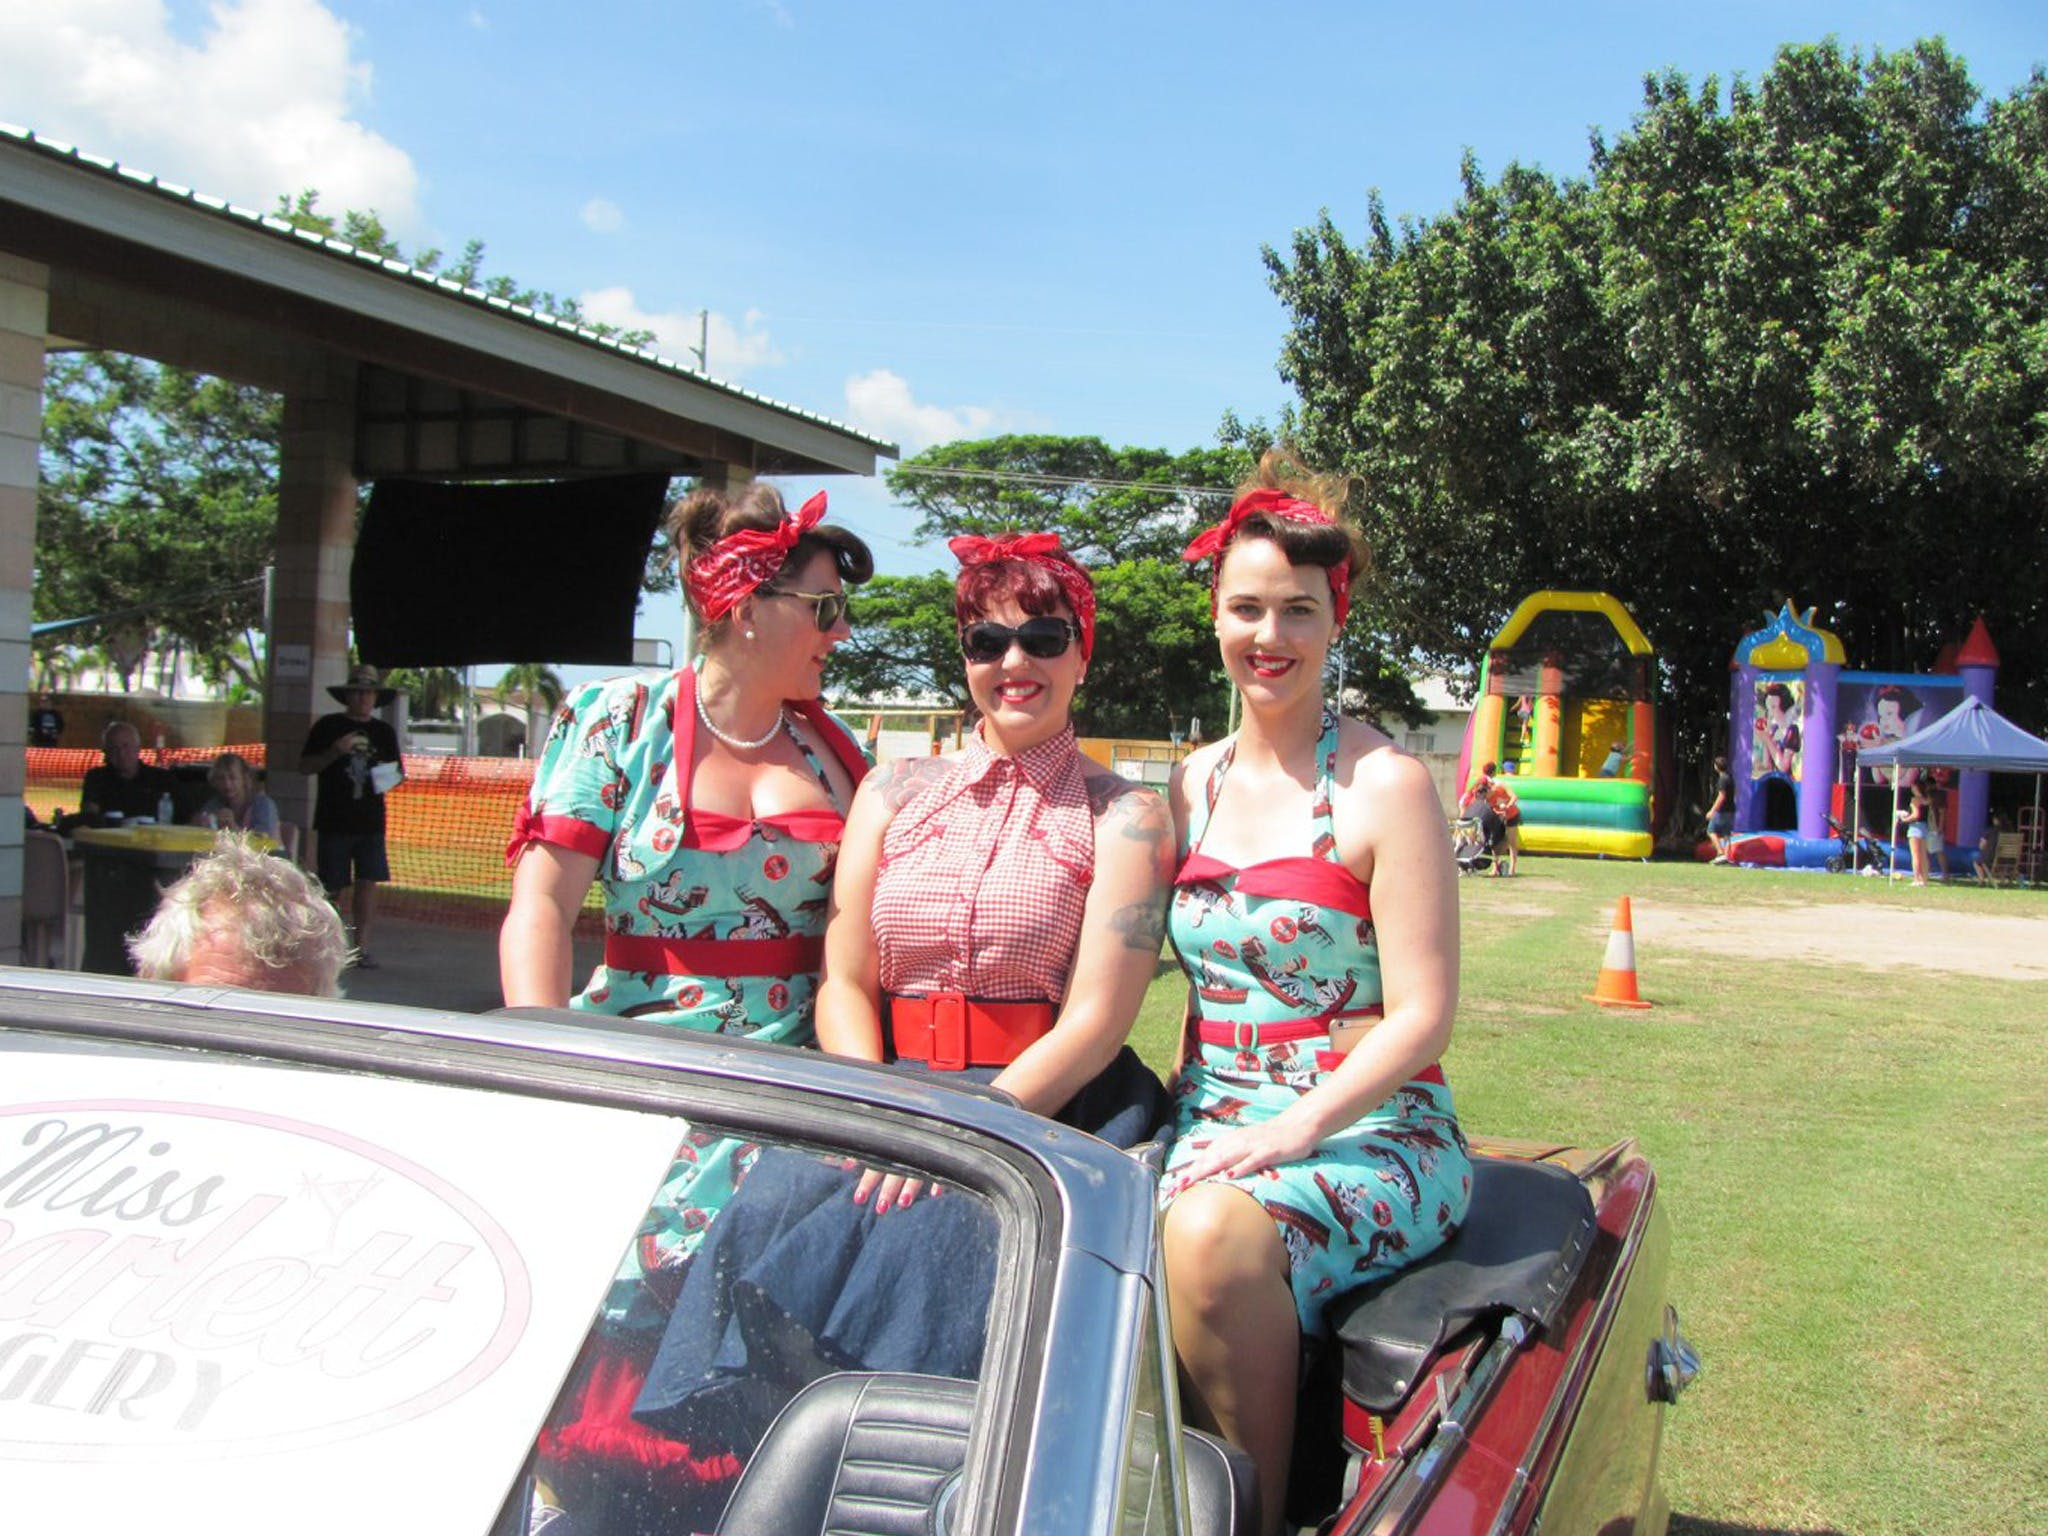 Burdekin Auto Festival - Pubs and Clubs